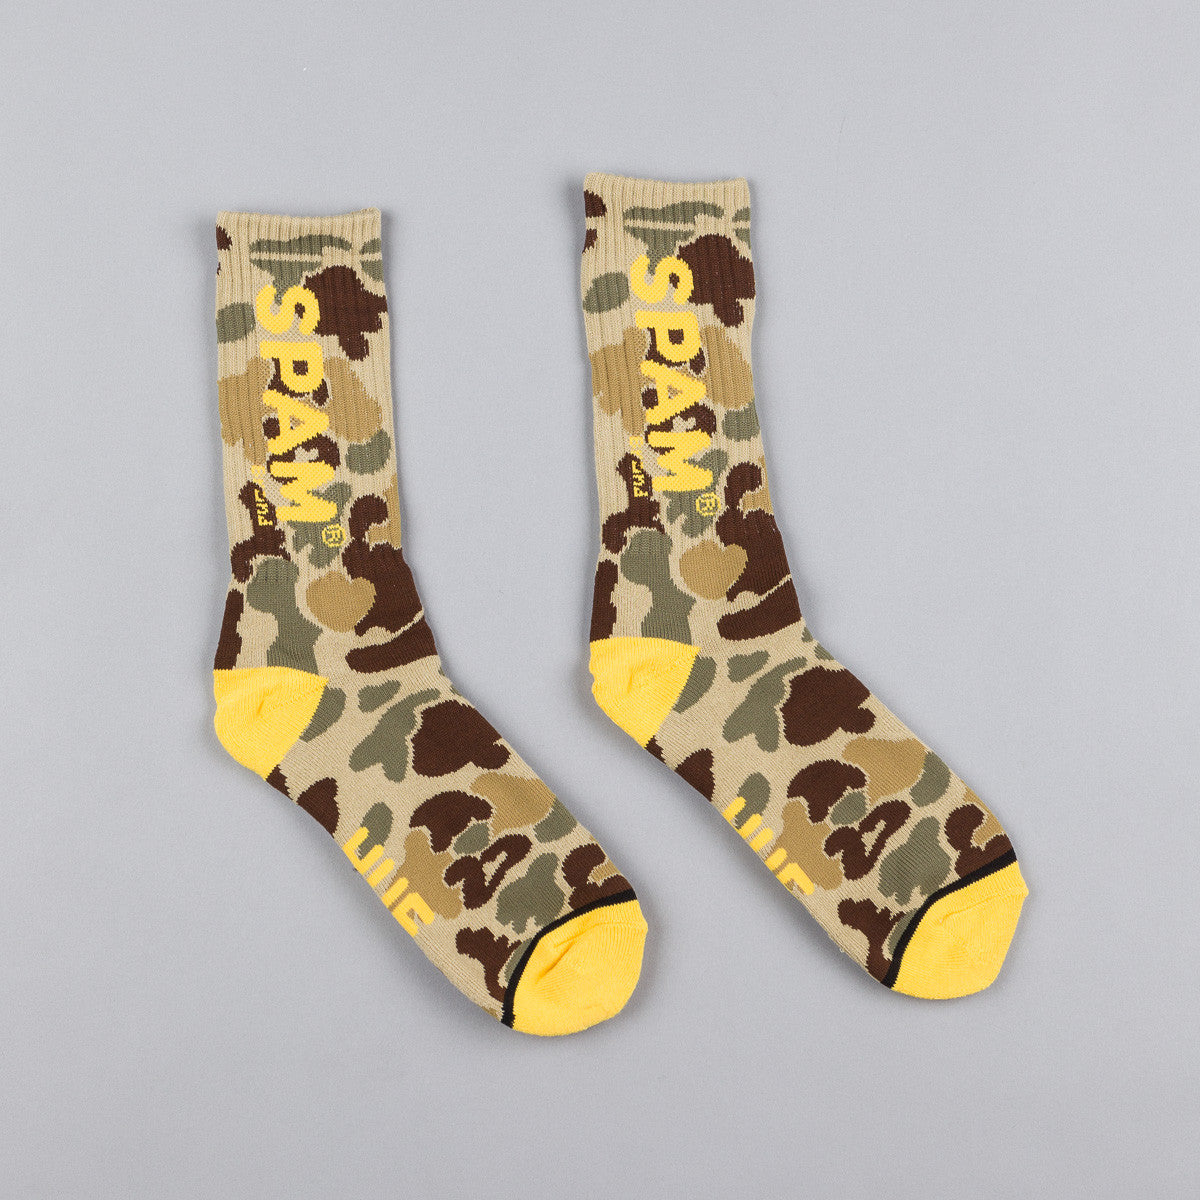 Huf Spam Crew Socks